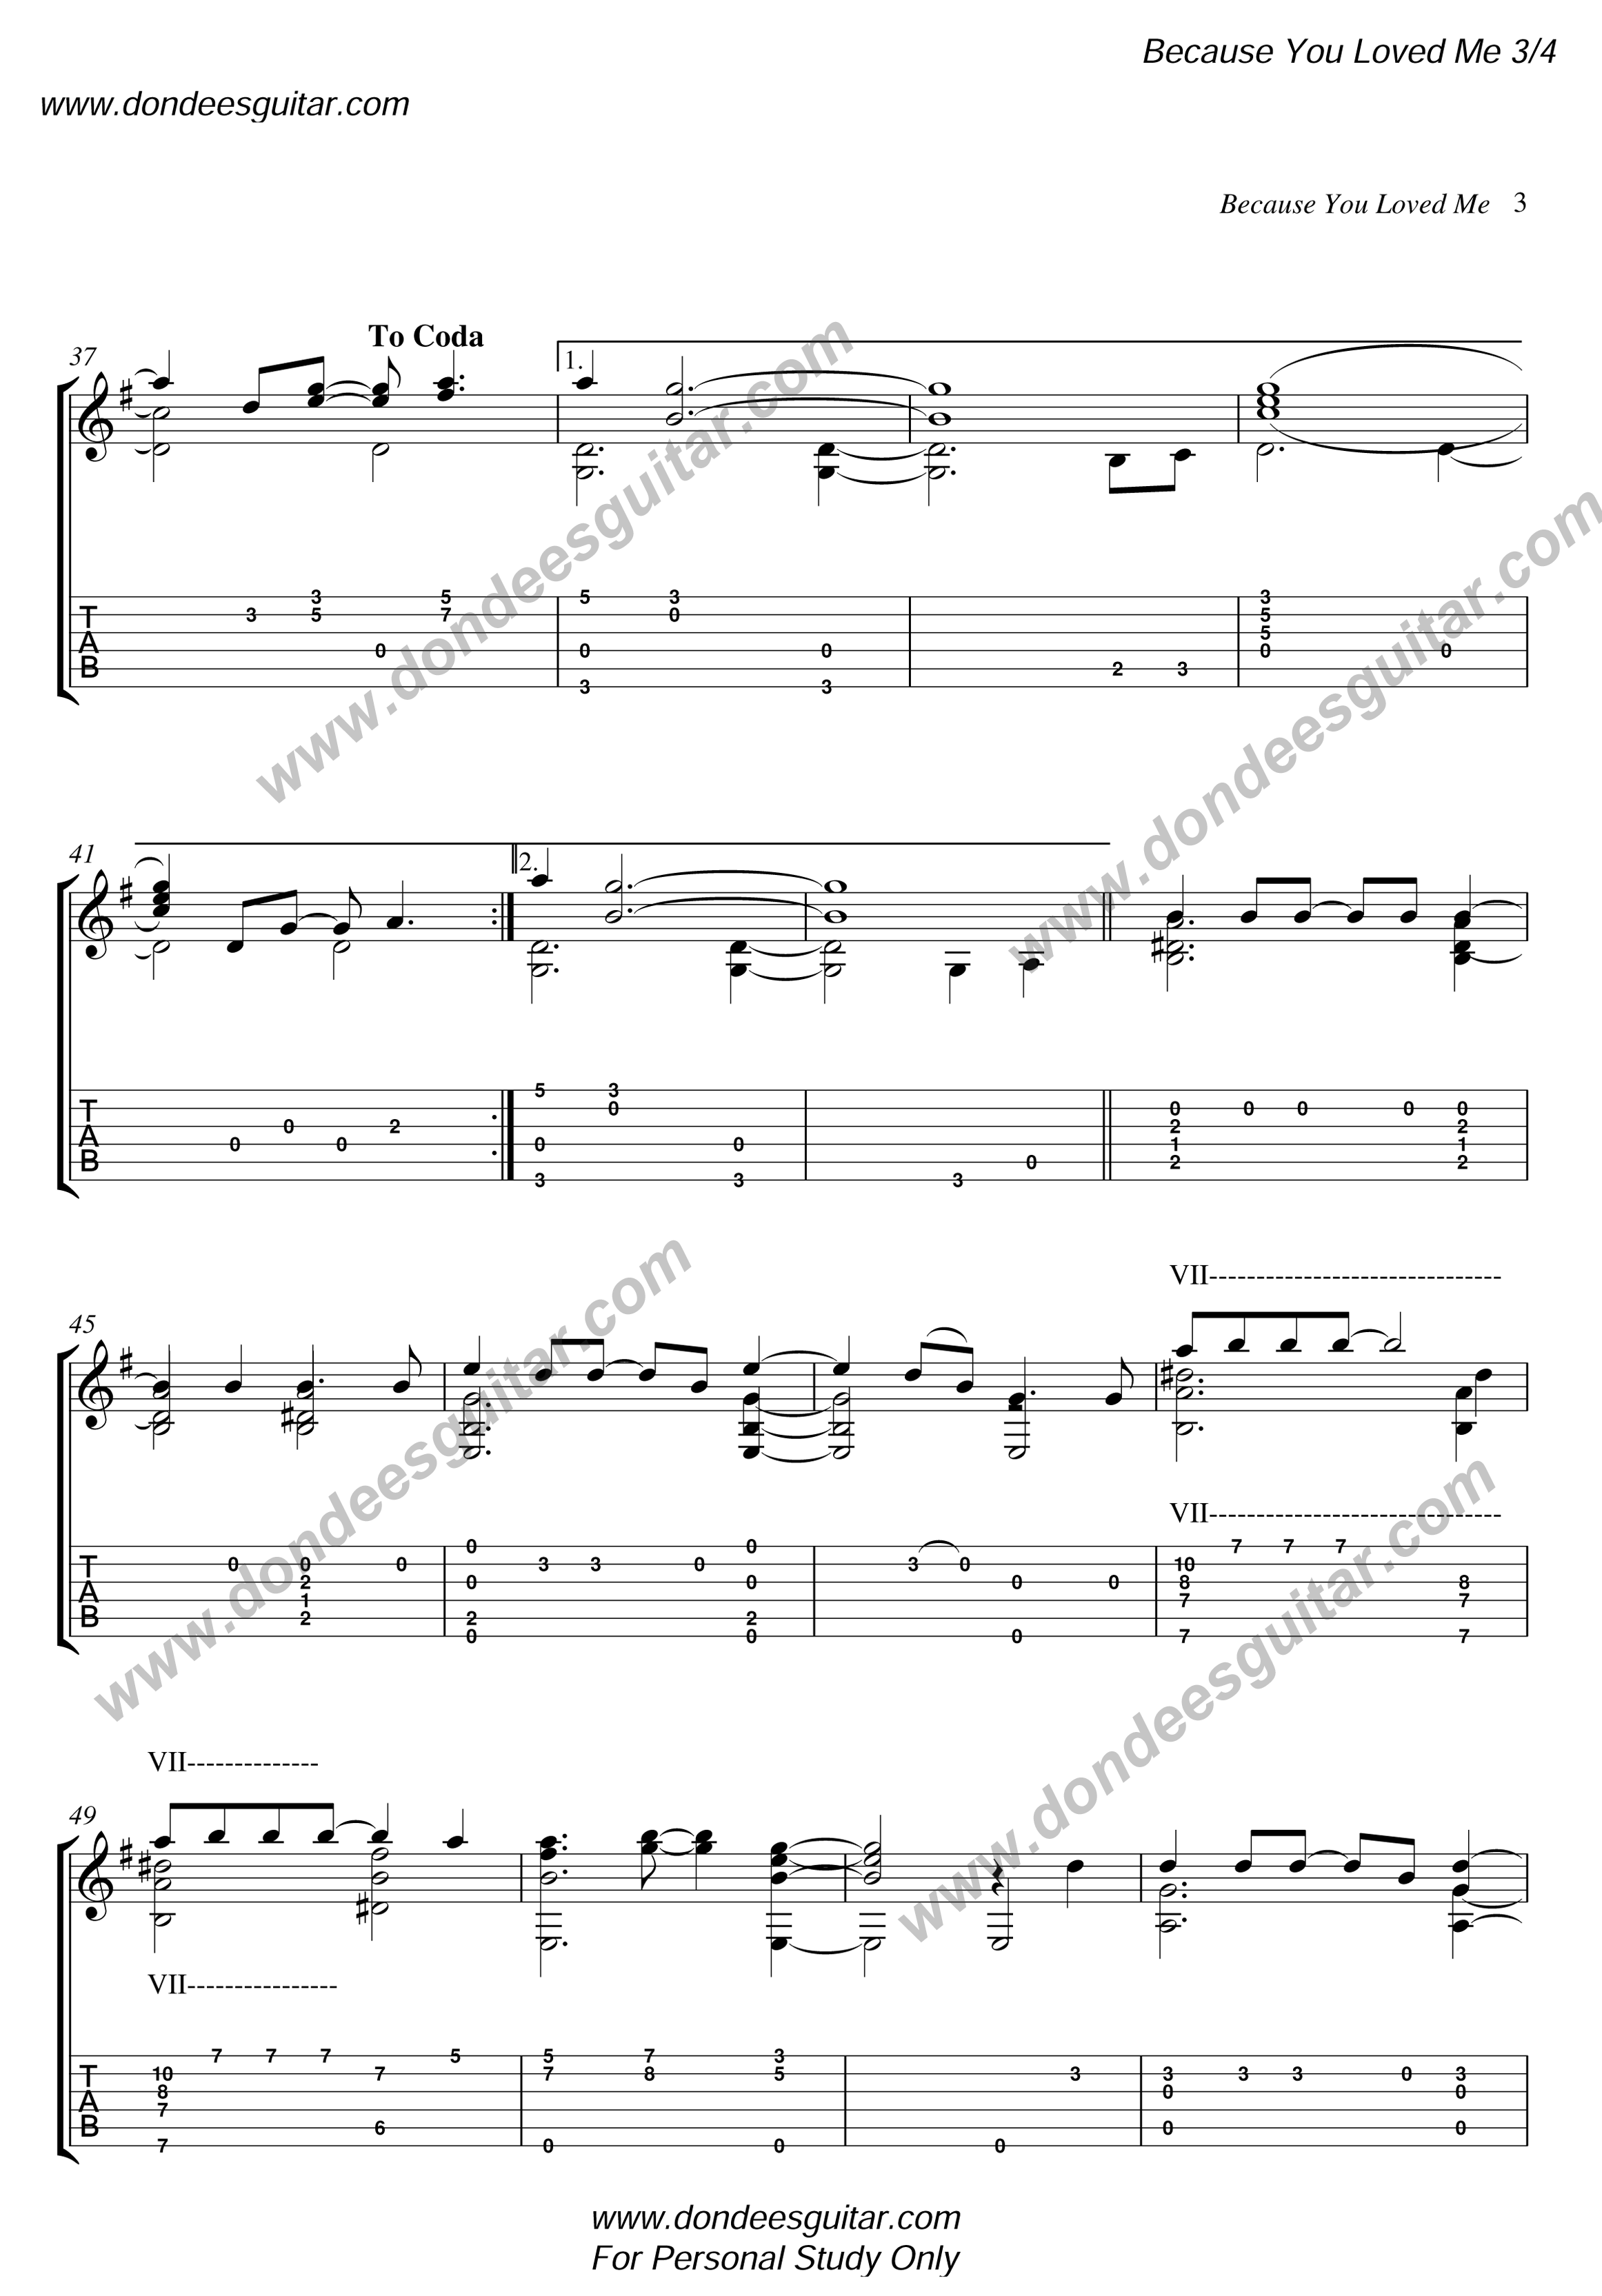 Because You Loved Me Fingerstyle Tabs